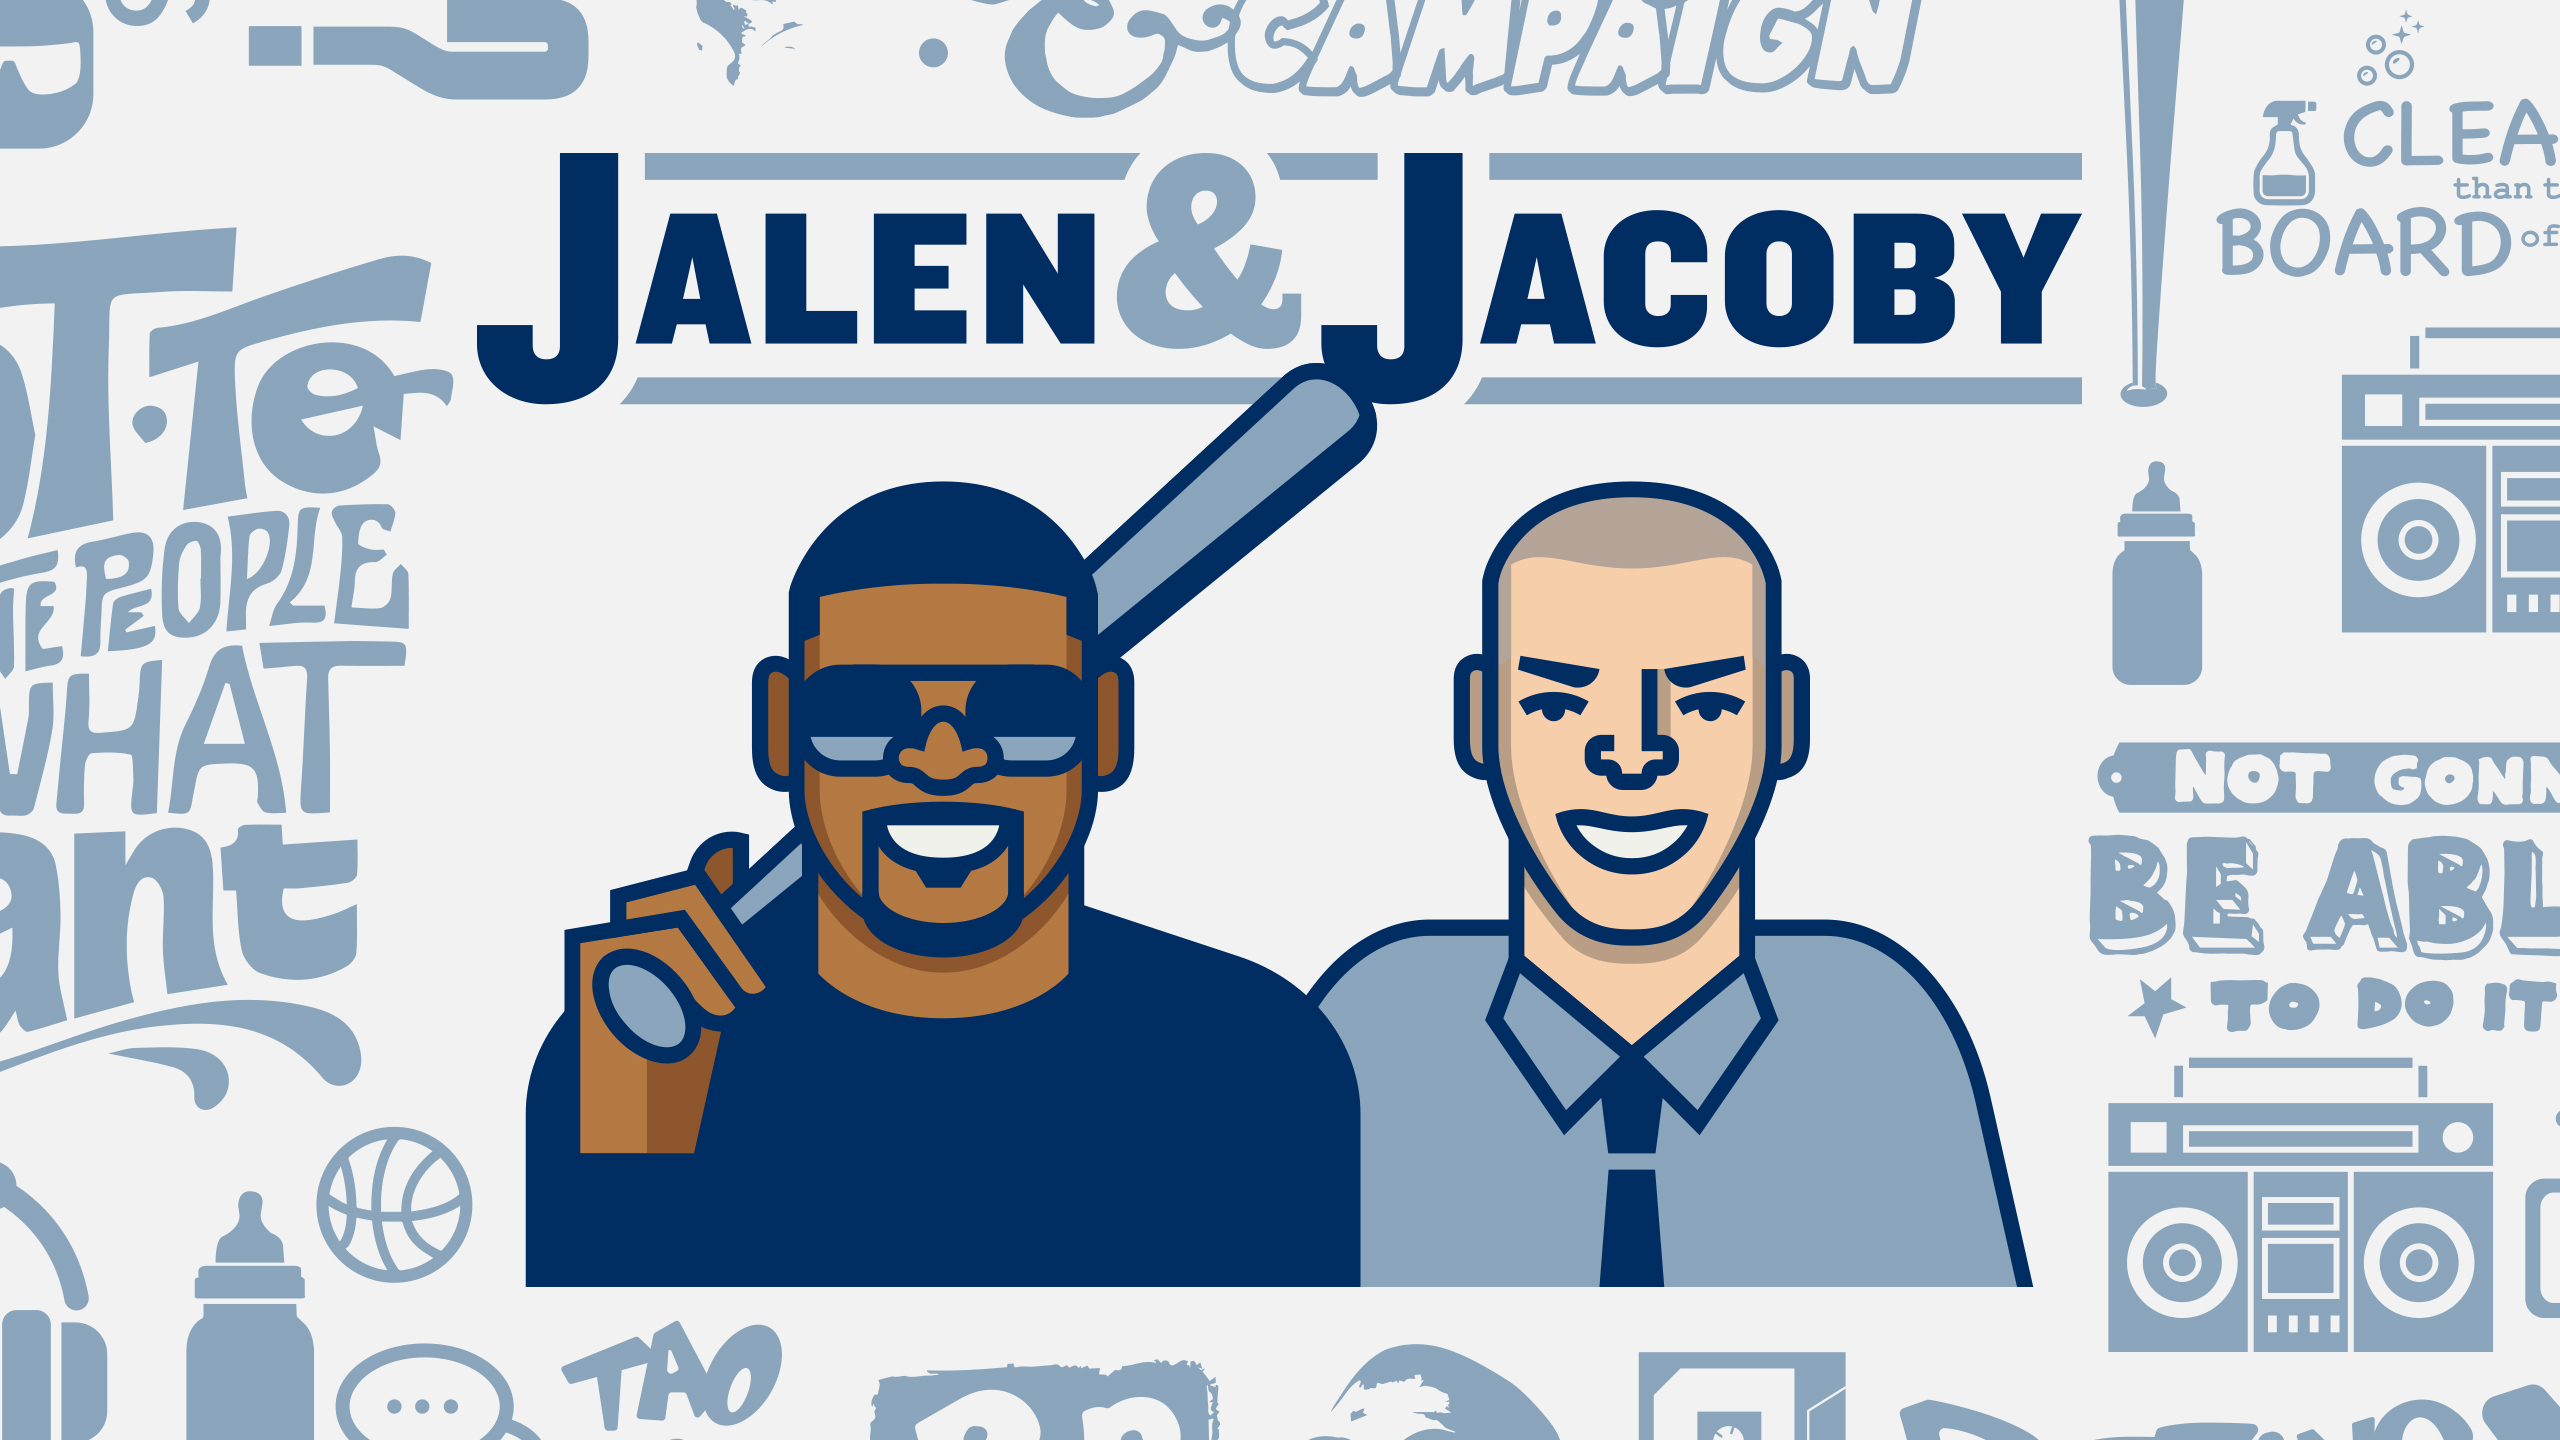 Tue, 12/18 - Jalen & Jacoby